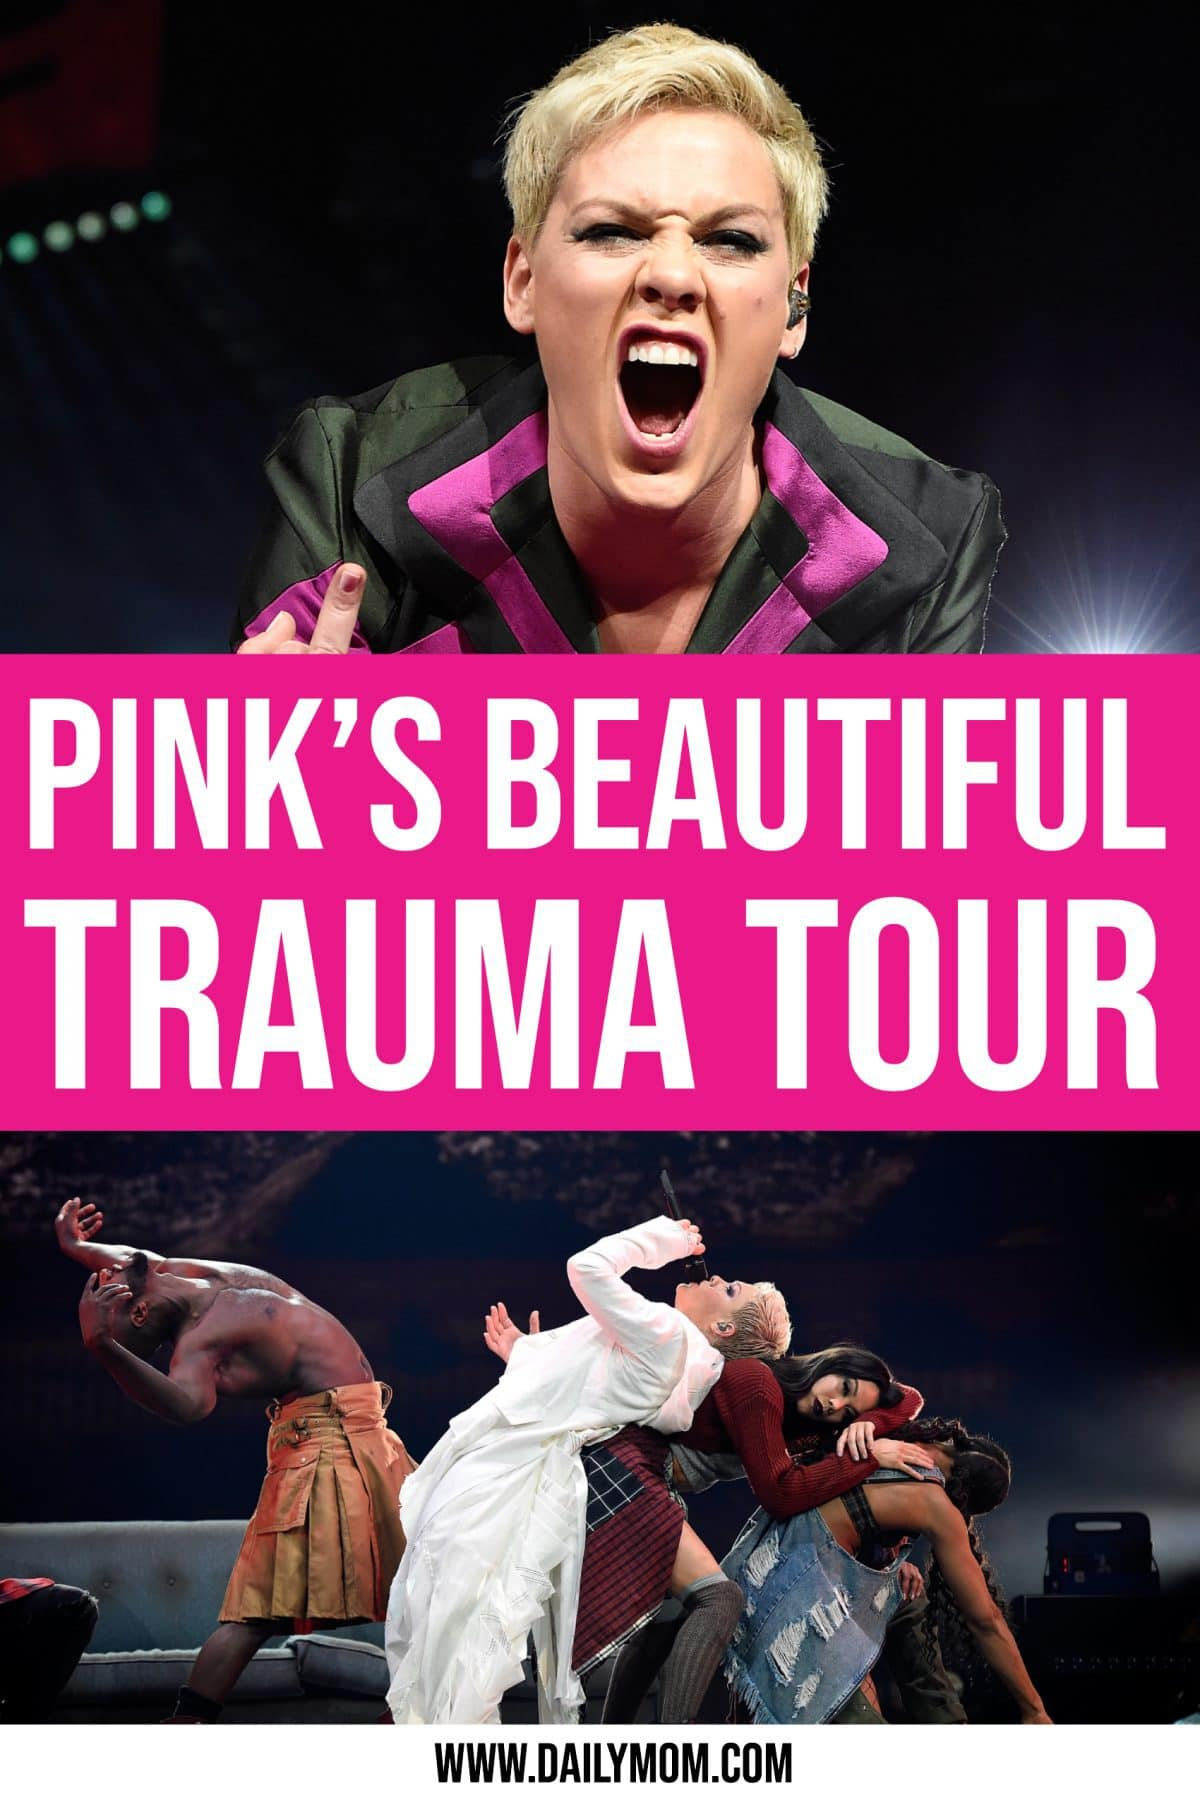 Pink's Beautiful Trauma Tour By Dm Concert Series